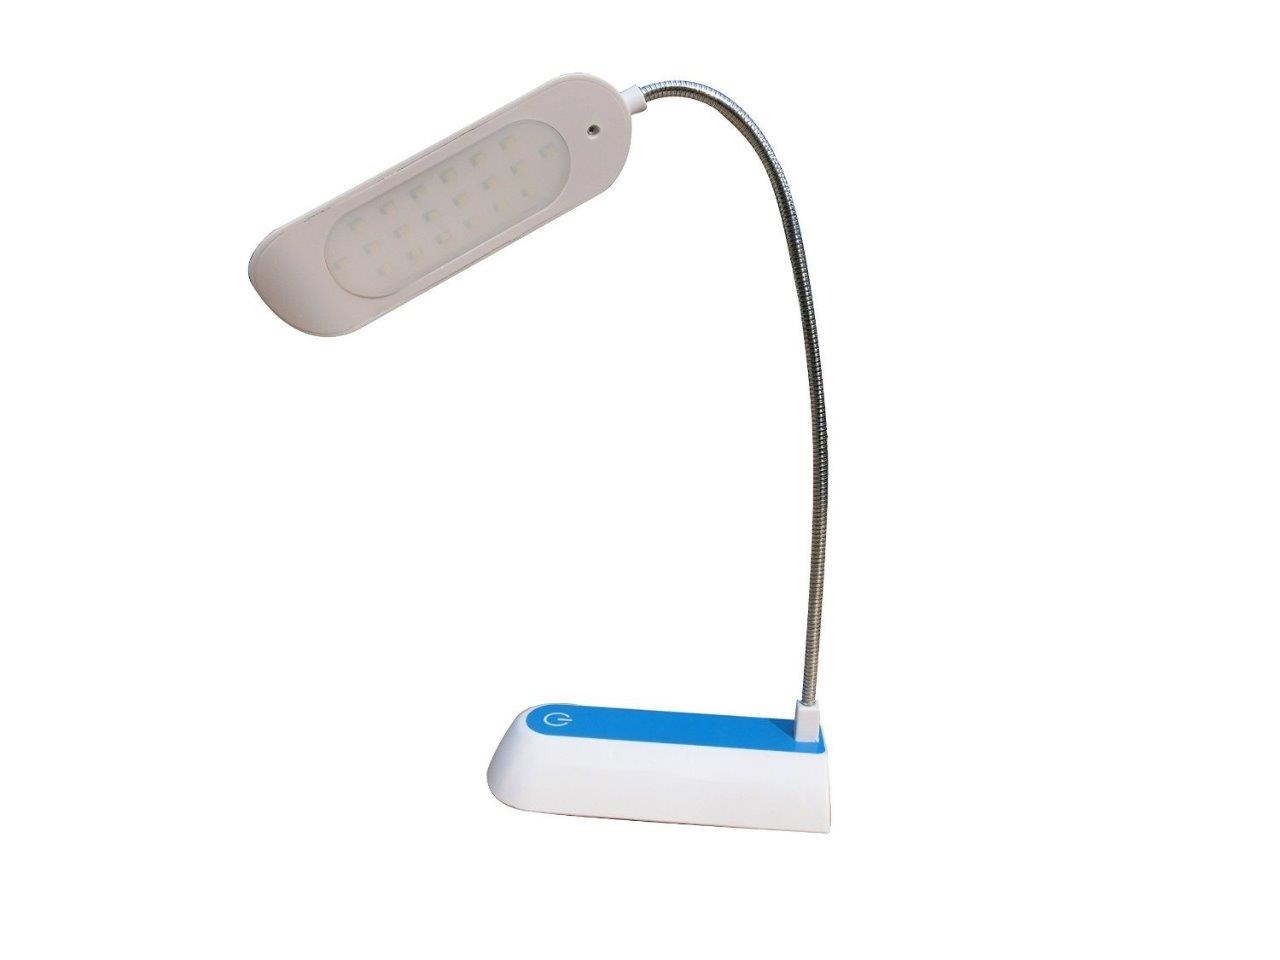 Blue Lightahead Modern Stylish Eye Friendly Led Desk Lamp Usb Powered Dimmable Touch Control Reading Light Flexible With Usb Charging Port And 3 Levels Of Smart Touch Adjustable Brightness Lightahead Desk Lamps